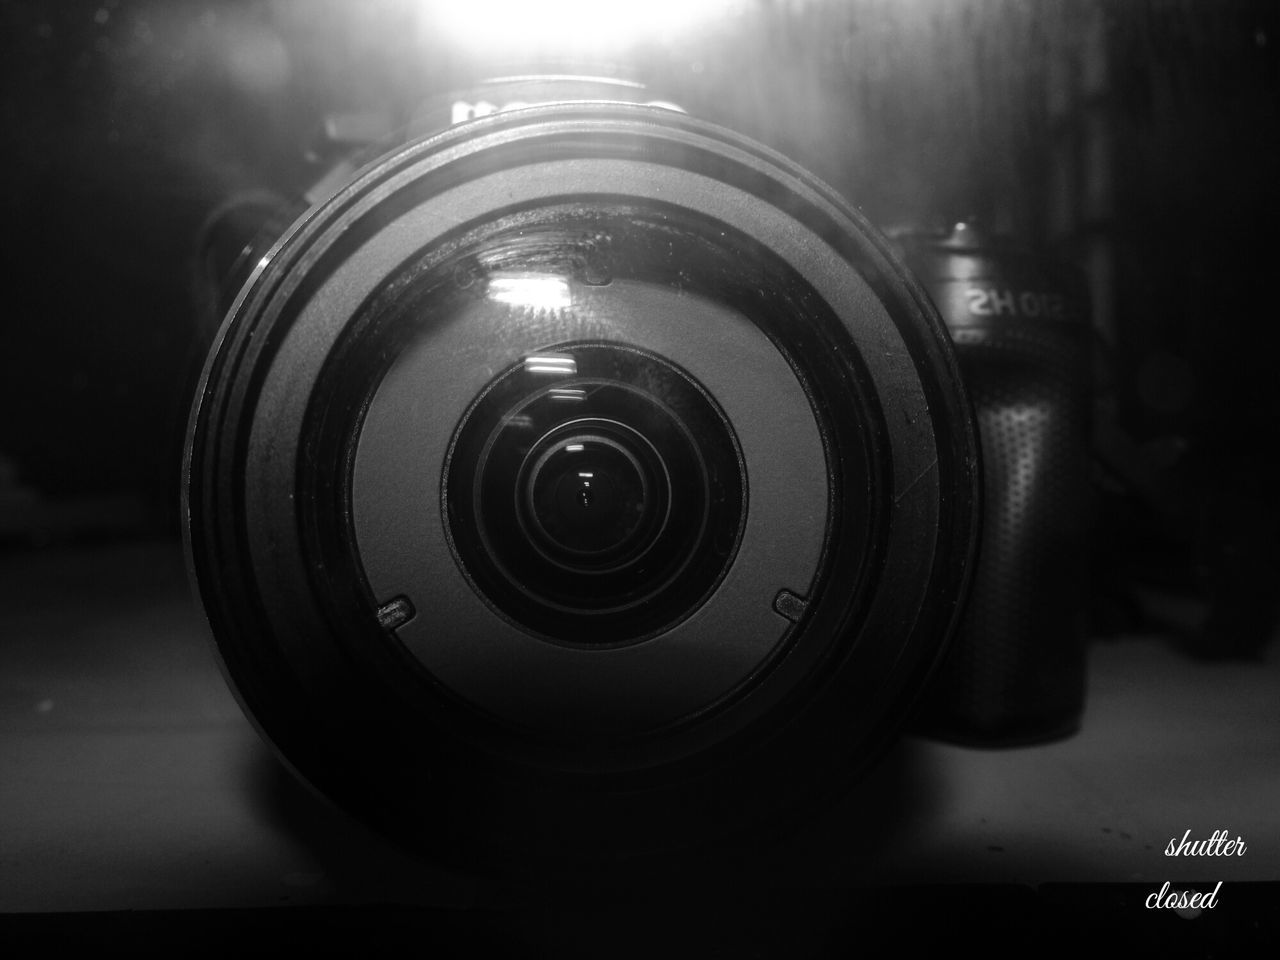 The camera mirror selfie Full Frame Extreme Close Up Camera - Photographic Equipment Black And White Black And White Photography Lowlightphotography Less Exposure Close-up Extreme Close-up Focus On Foreground The Way Forward Mirror Selfie First Eyeem Photo Canon Canonphotography AllBlack Camera Close Up (: Random Click MyClick Shutterclosed My Best Photo 2016 ArtWork Great Pic Pic Of The Day Full Length